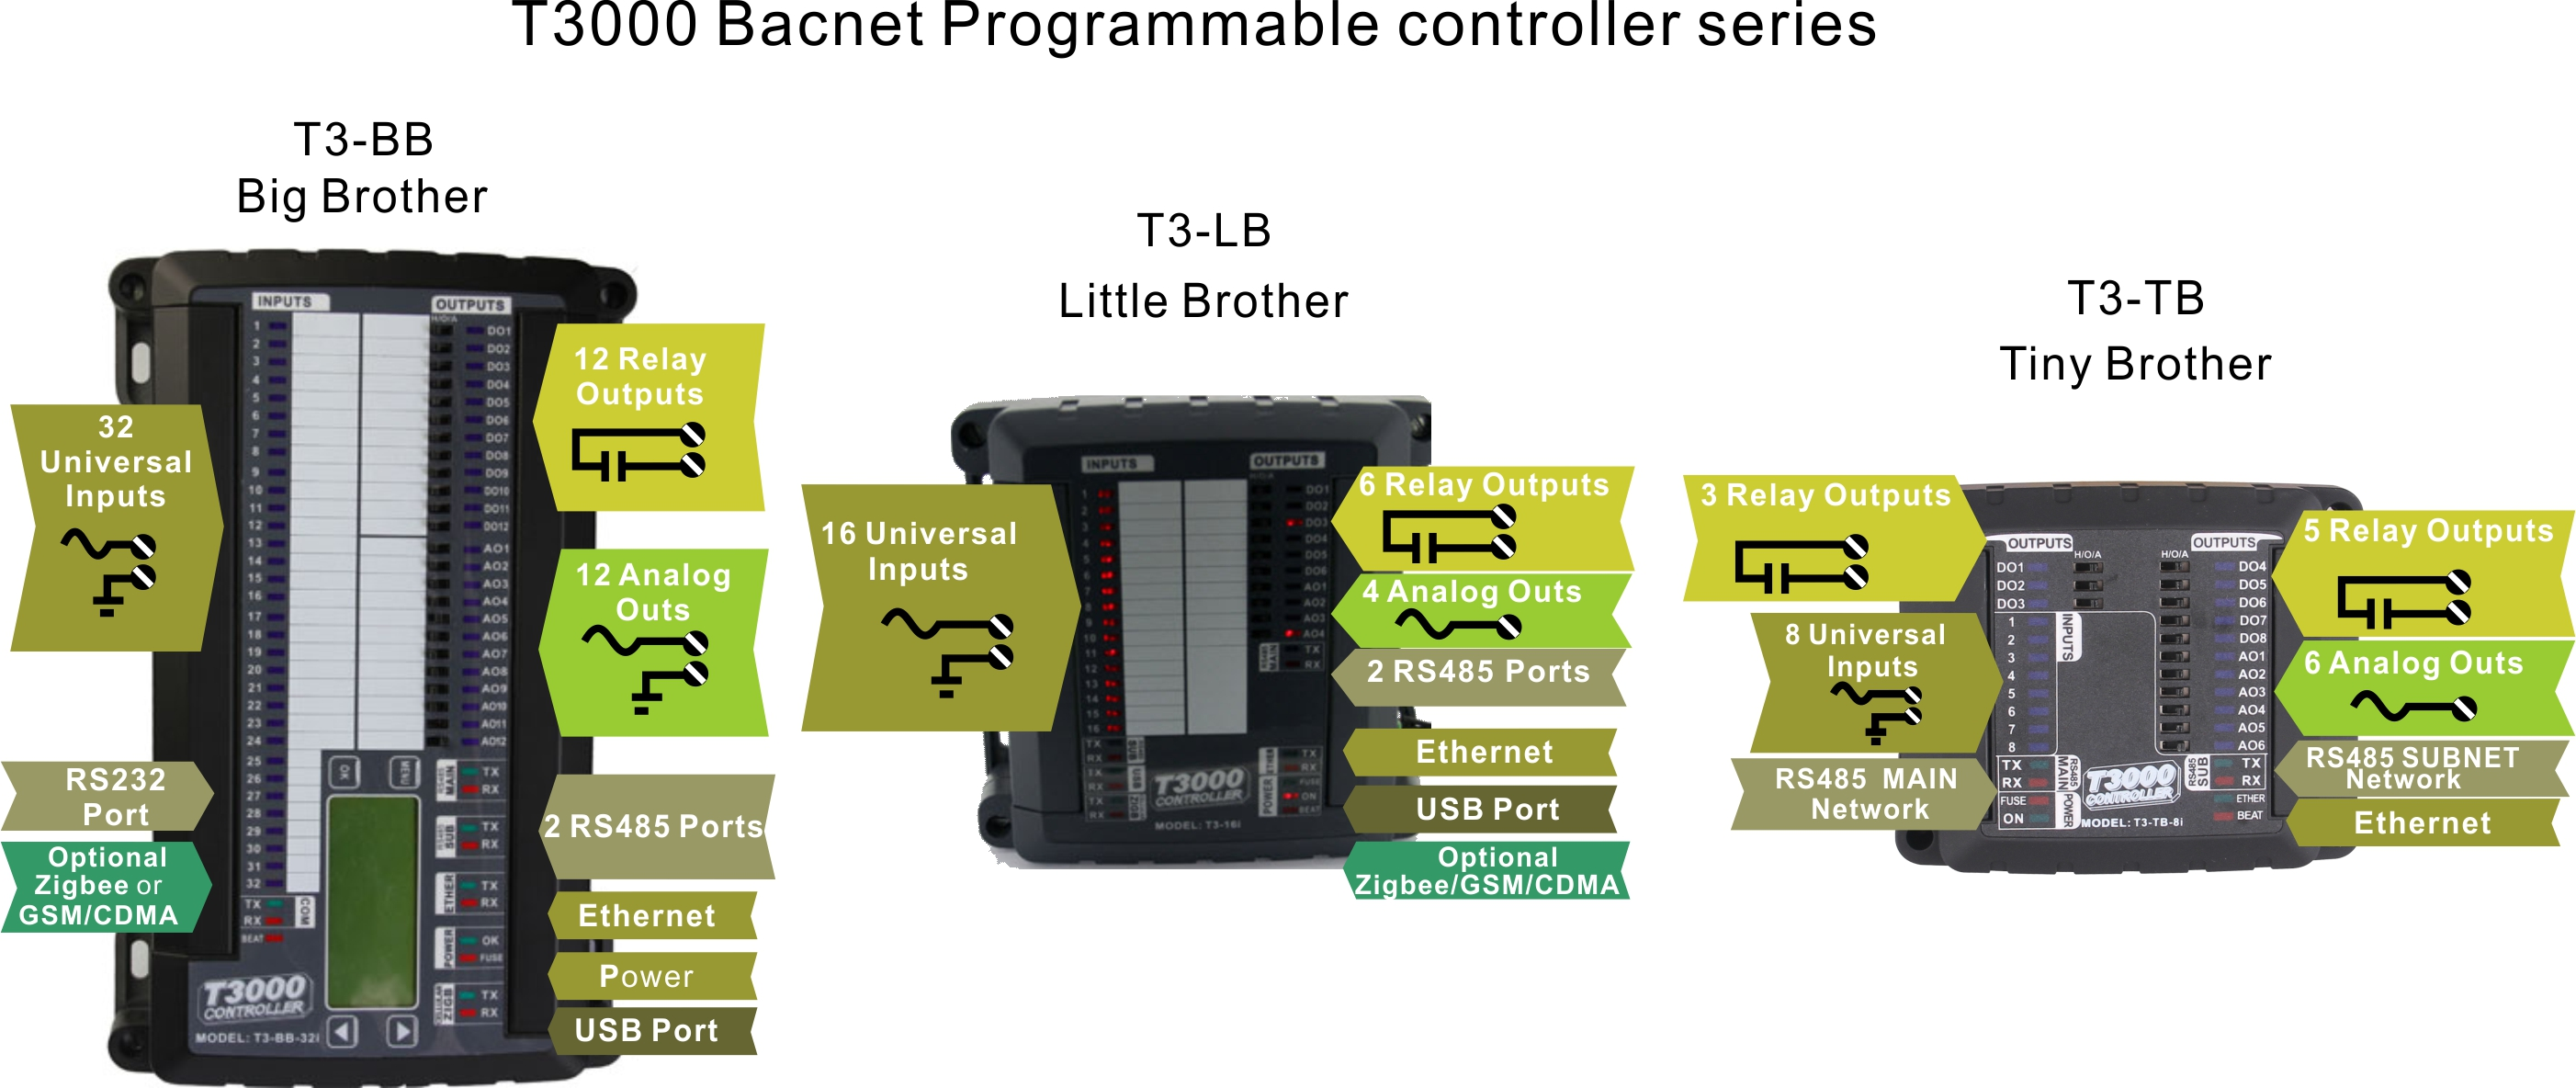 Bacnet Wiring Diagram Auto Electrical Programmable Controller